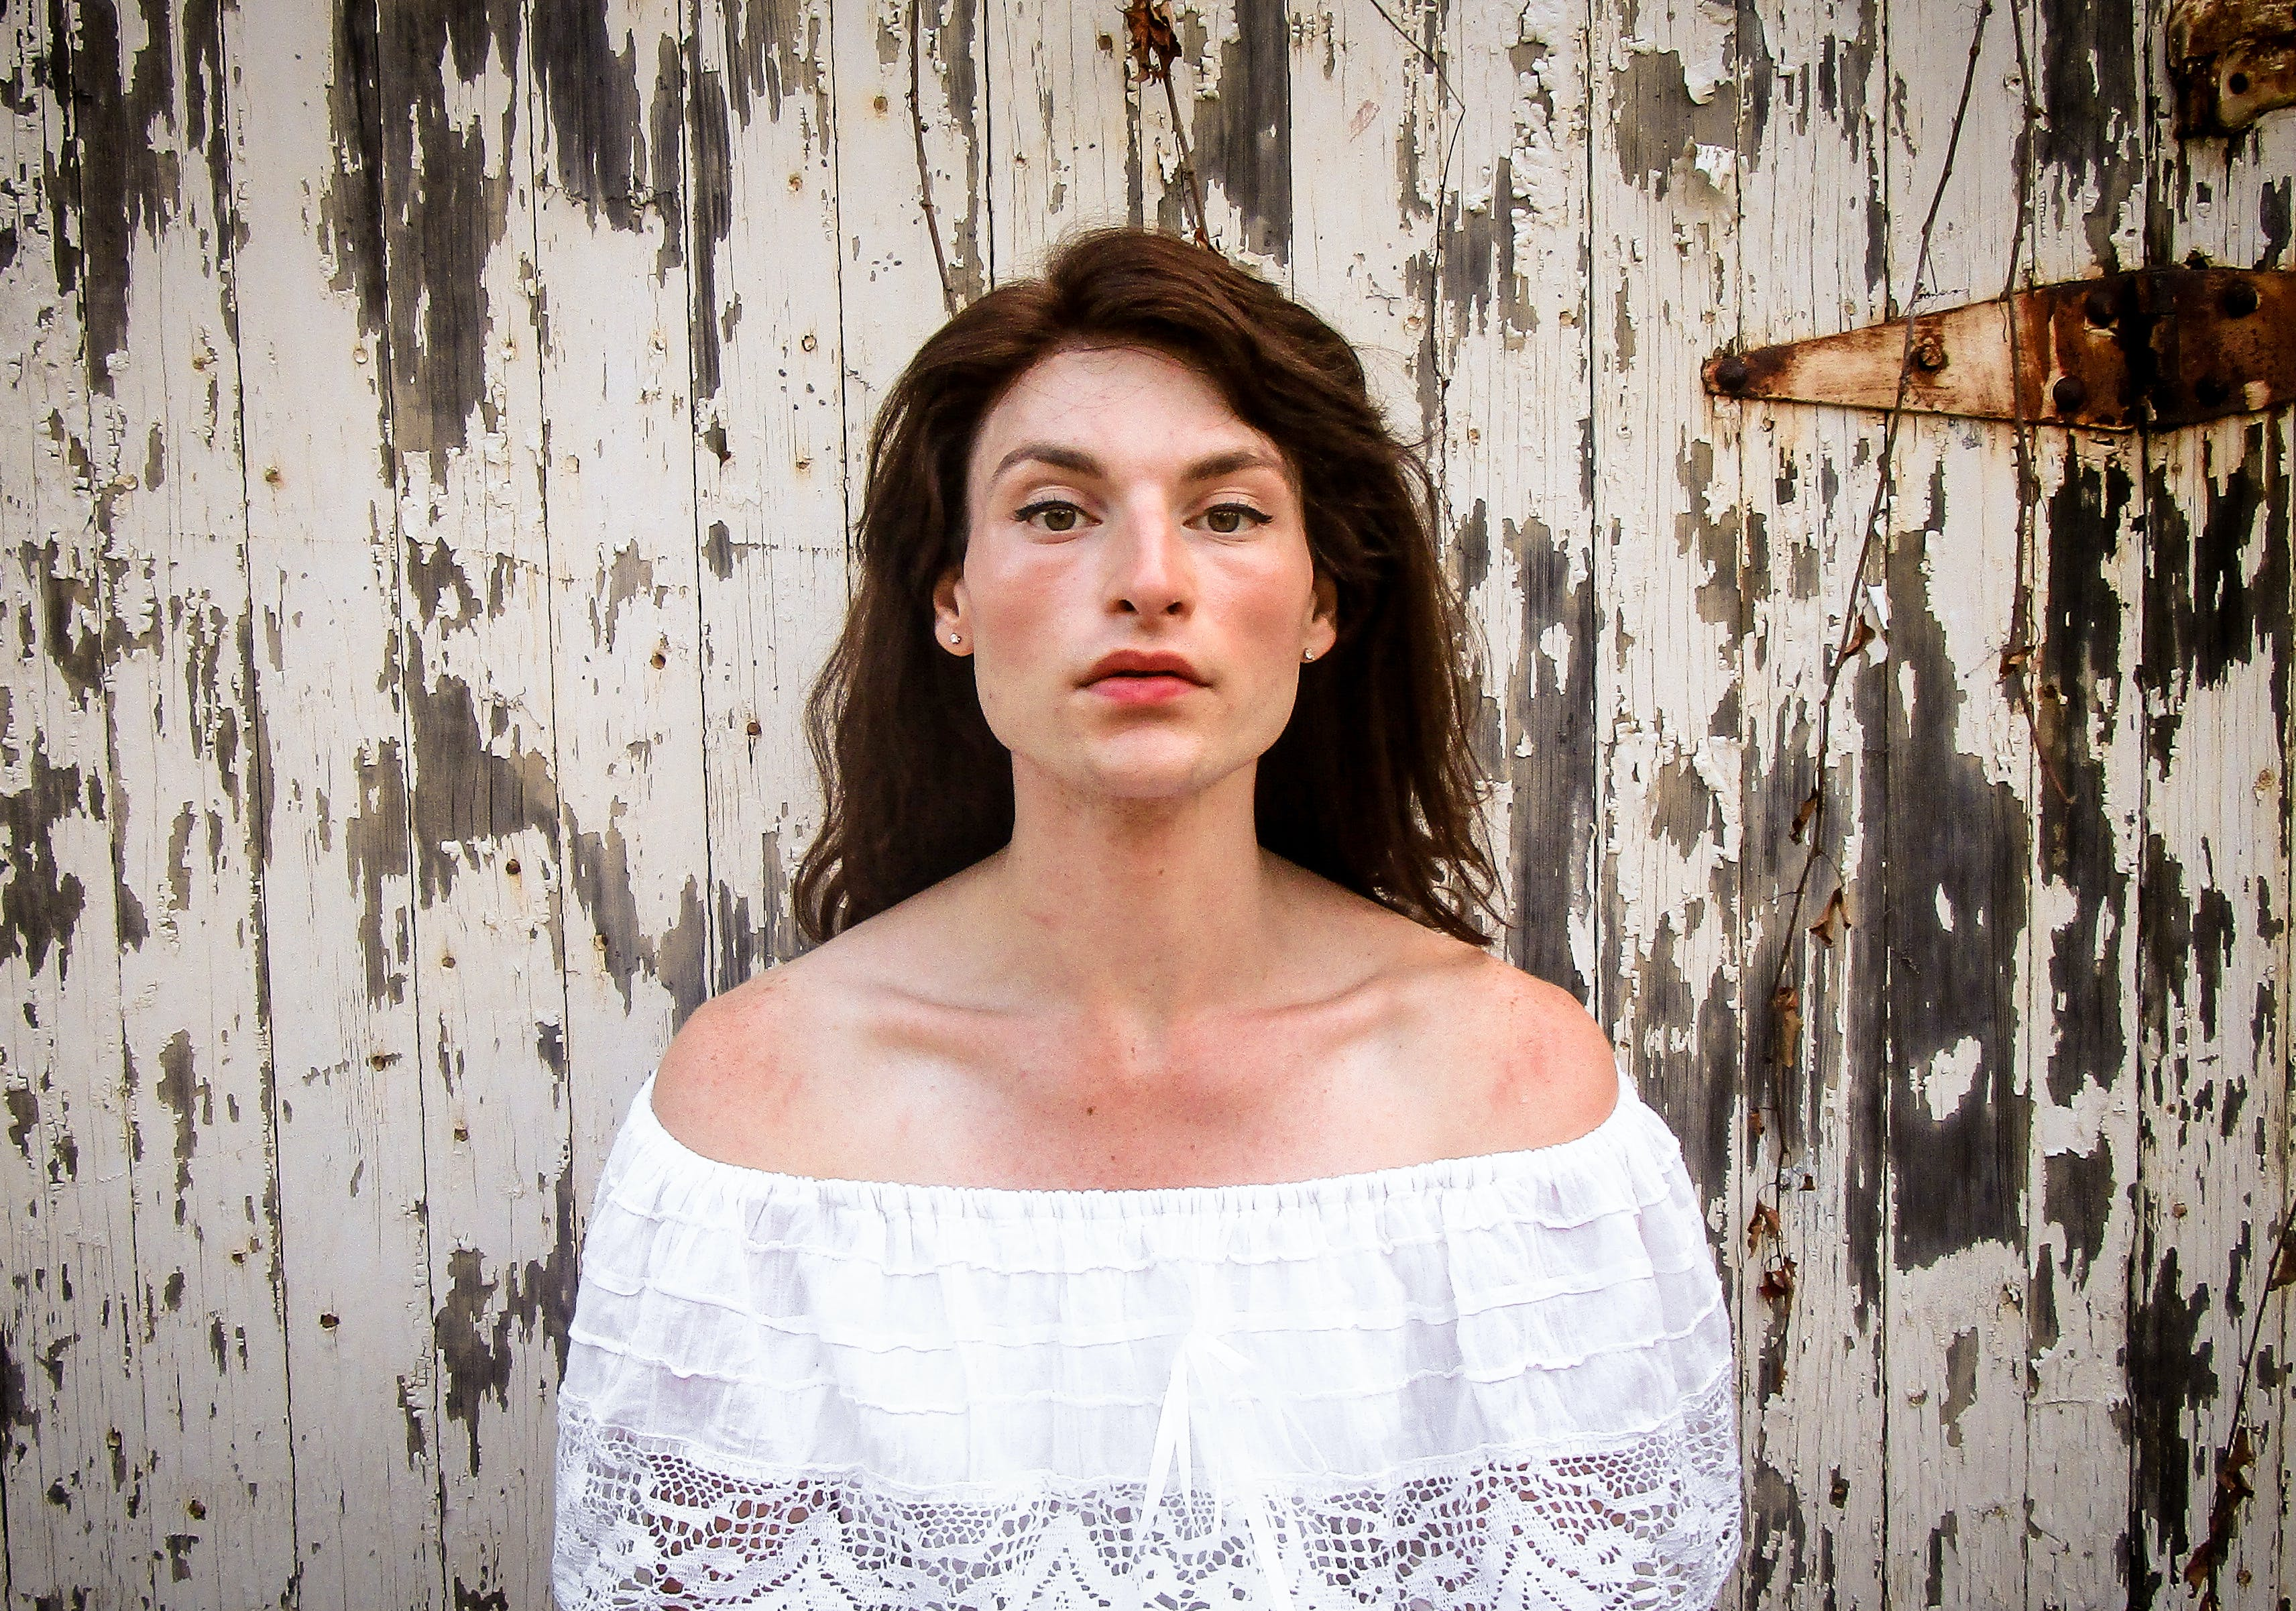 Woman Wearing White Off-shoulder Top